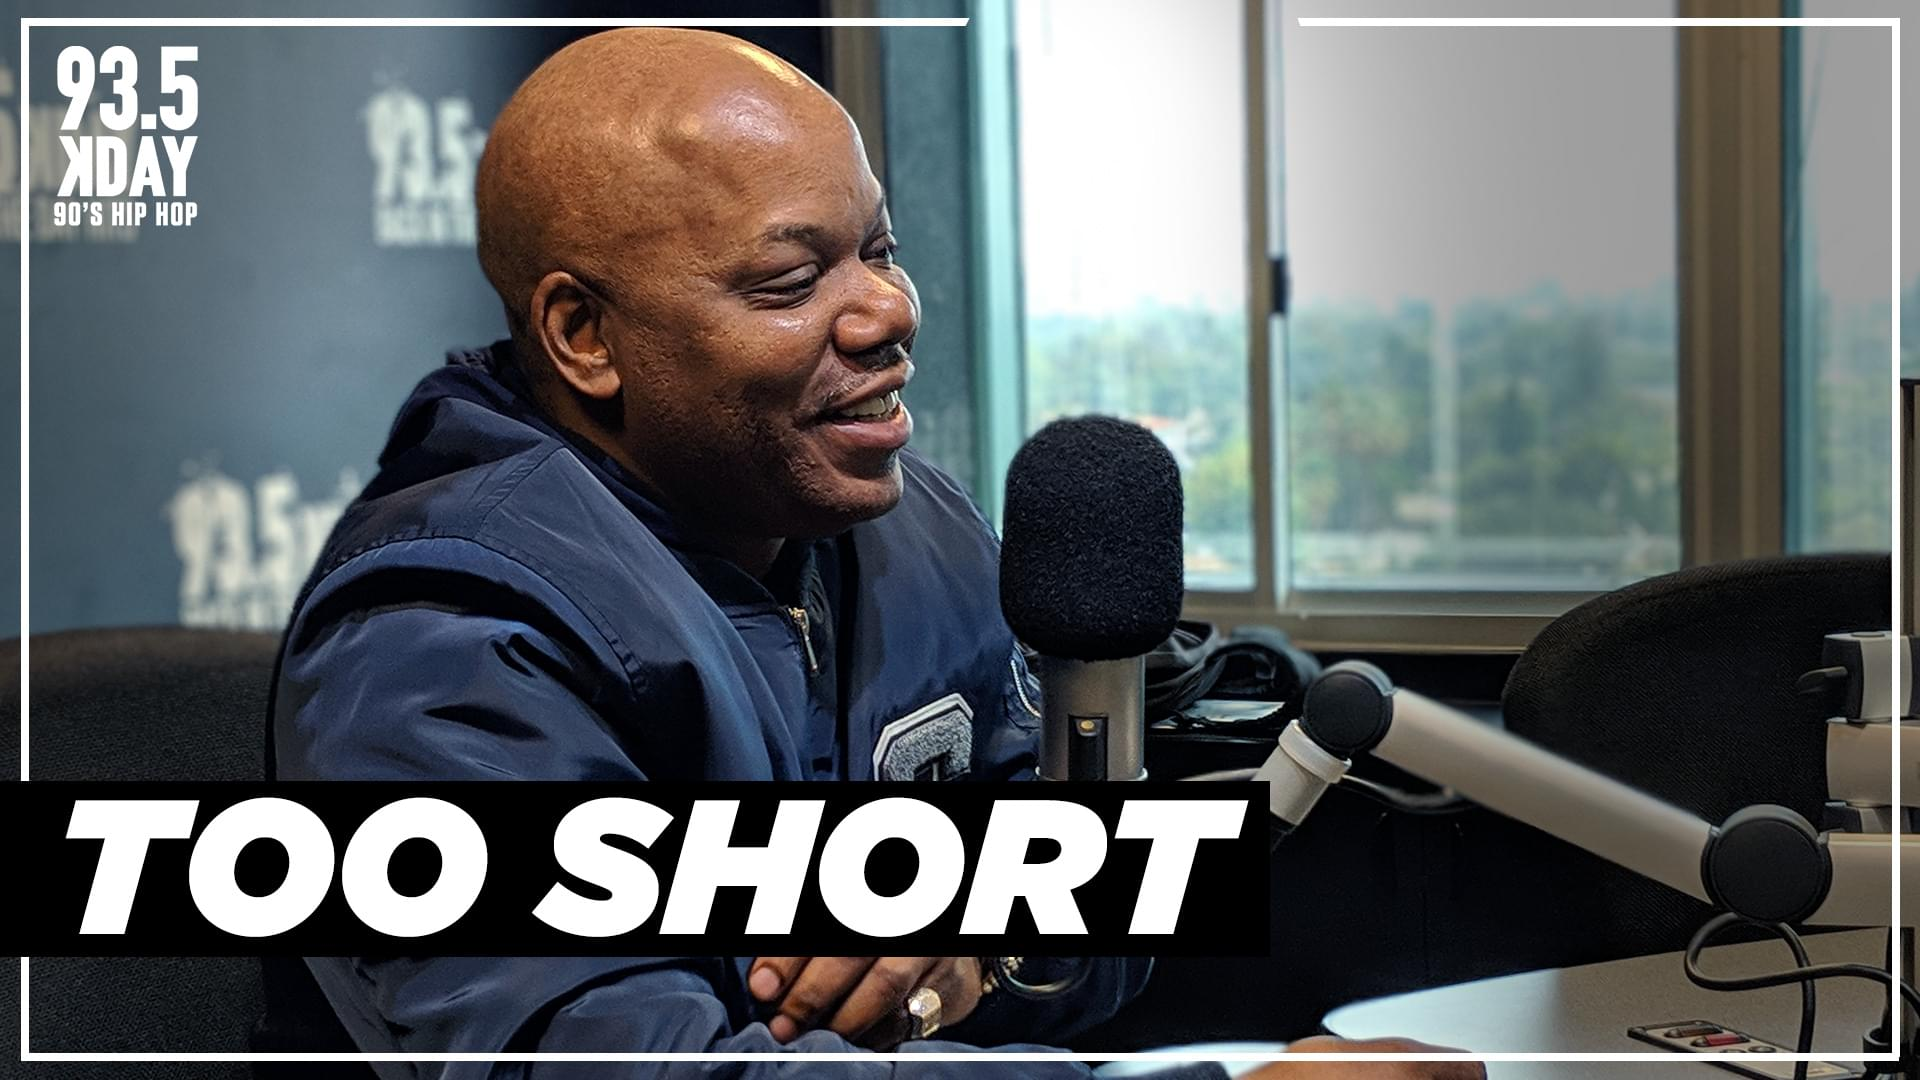 Too $hort Talks New Album 'The Pimp Tape', The Moment He Started Rapping, & Lil Jon Relationship